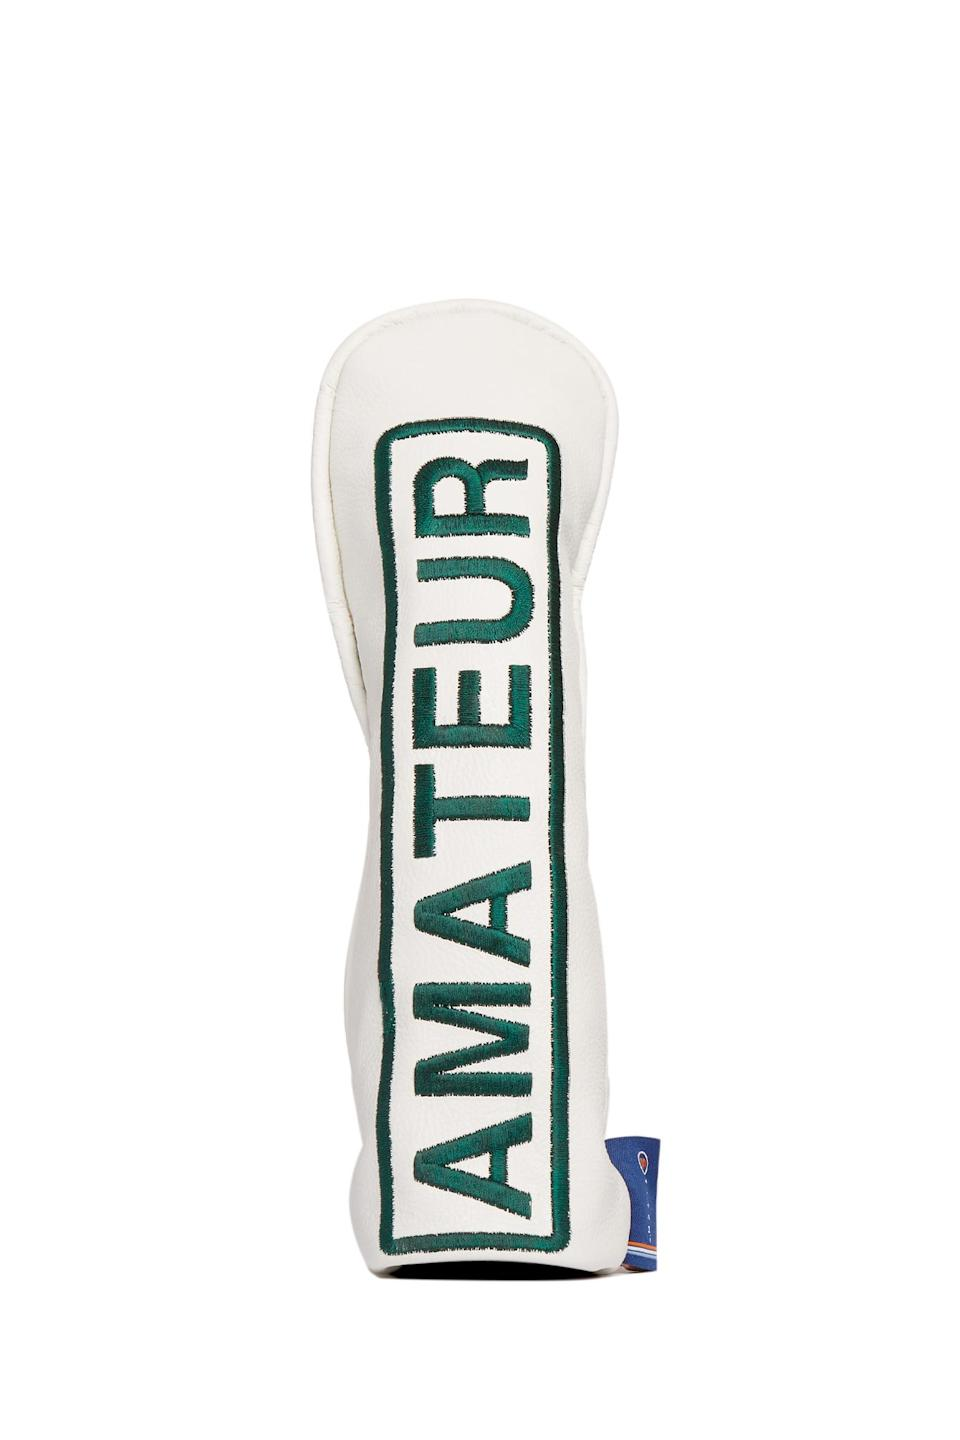 2021 Masters Hybrid Headcover- $98